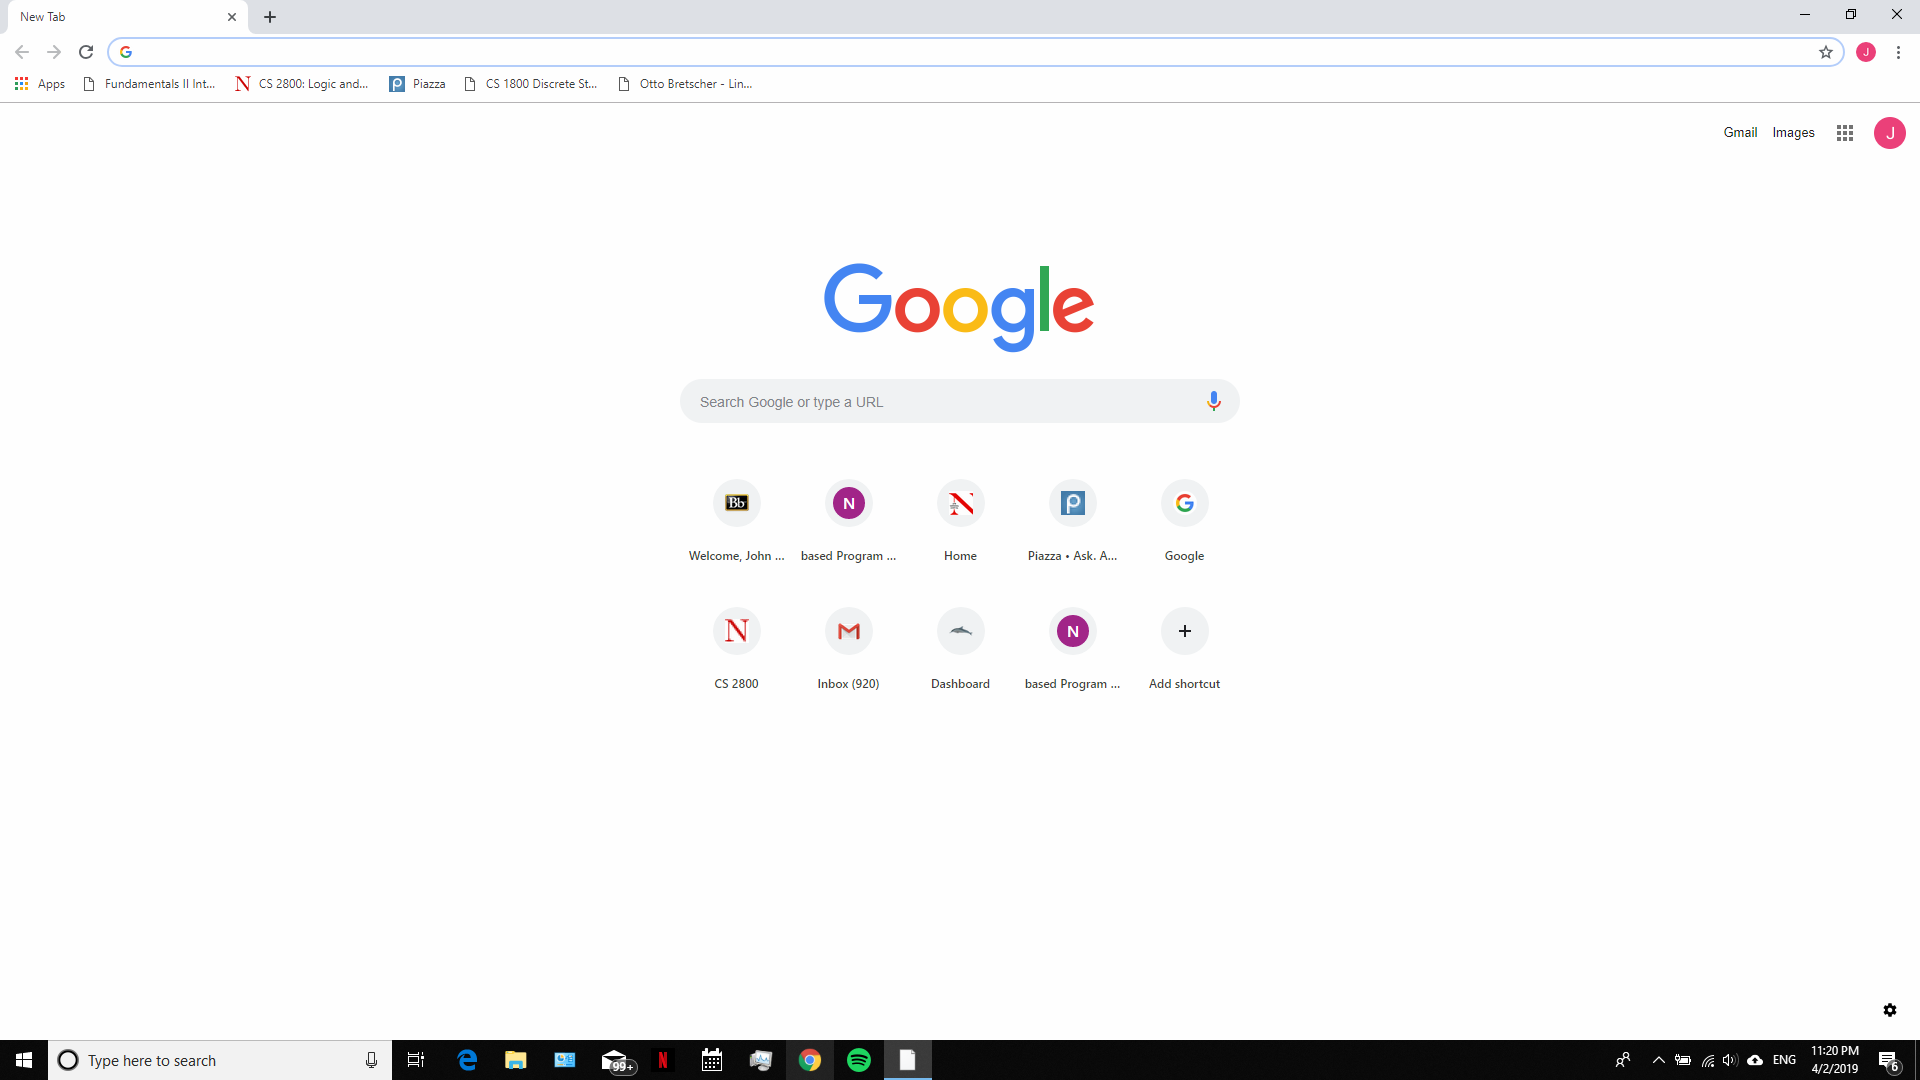 When I open Chrome, it opens with a weird icon - Google